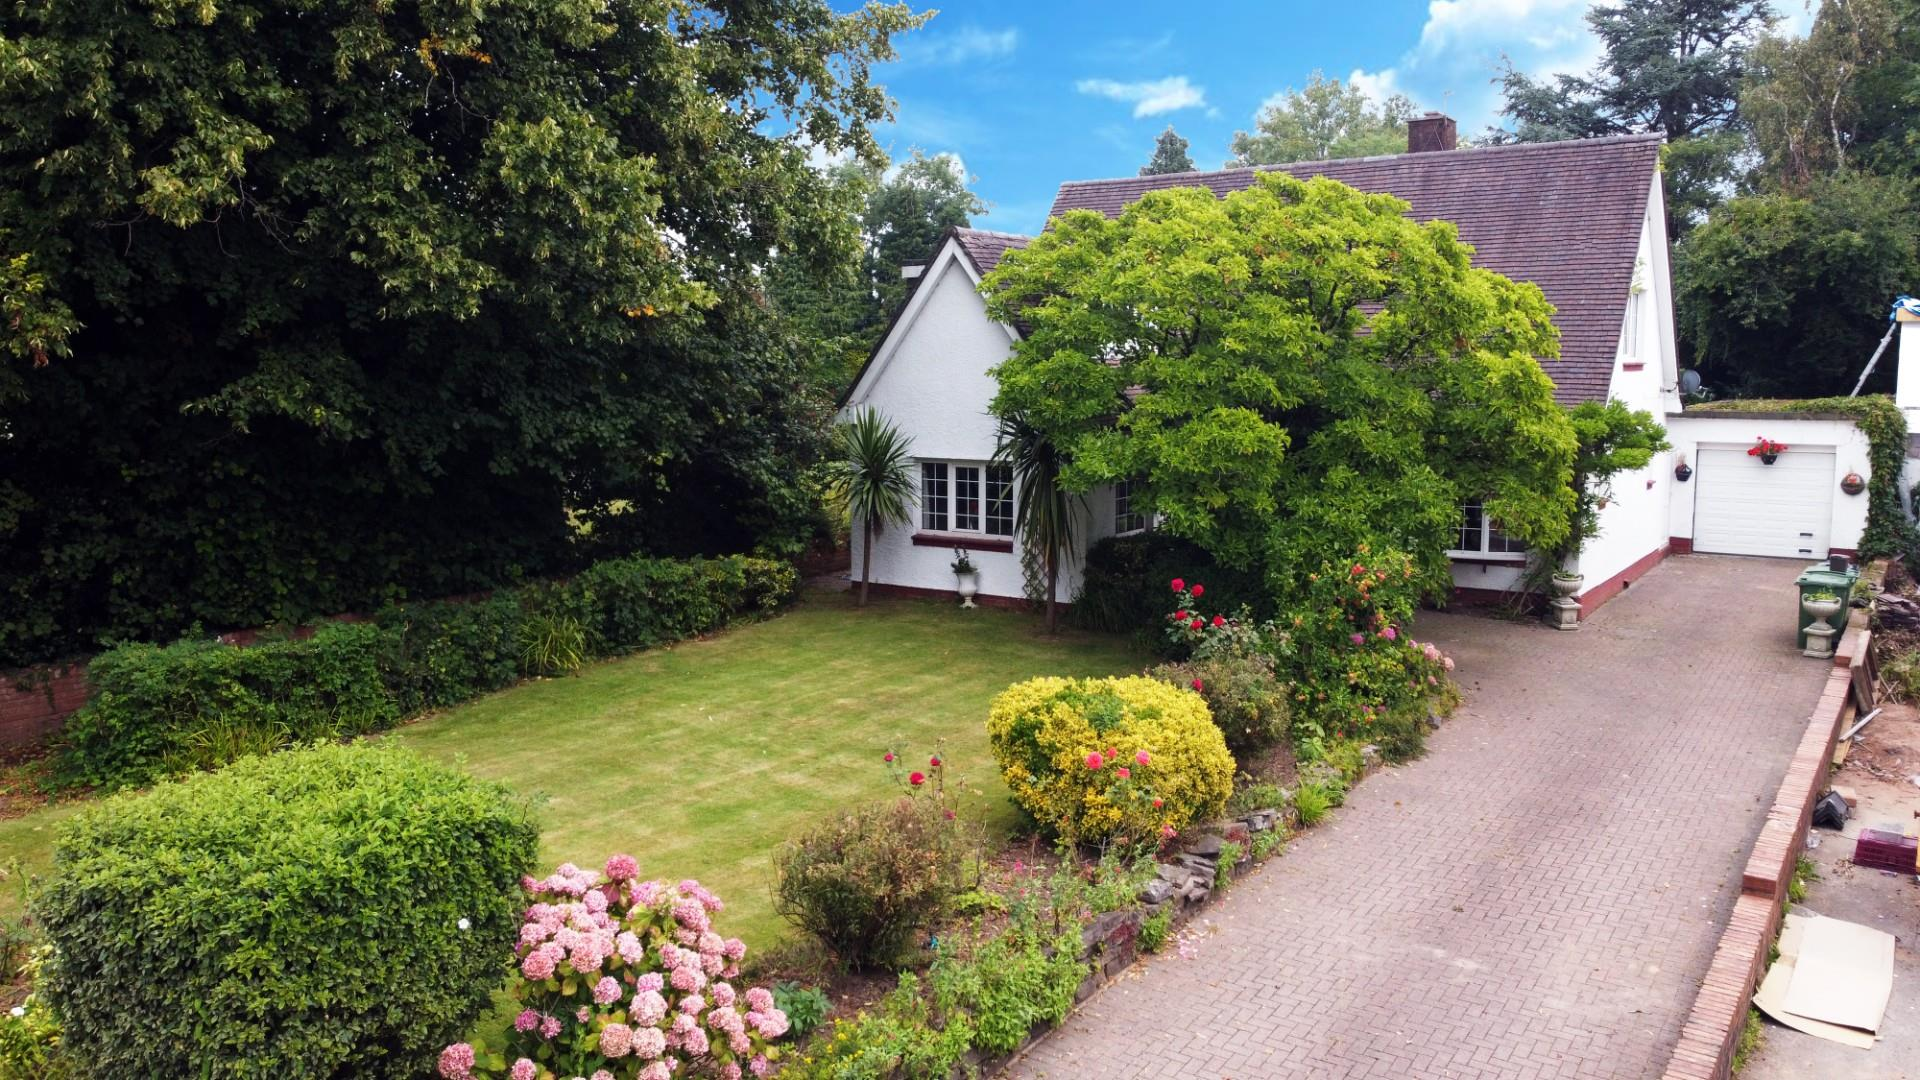 4 bed detached house for sale in Cyncoed Road, Cardiff 0